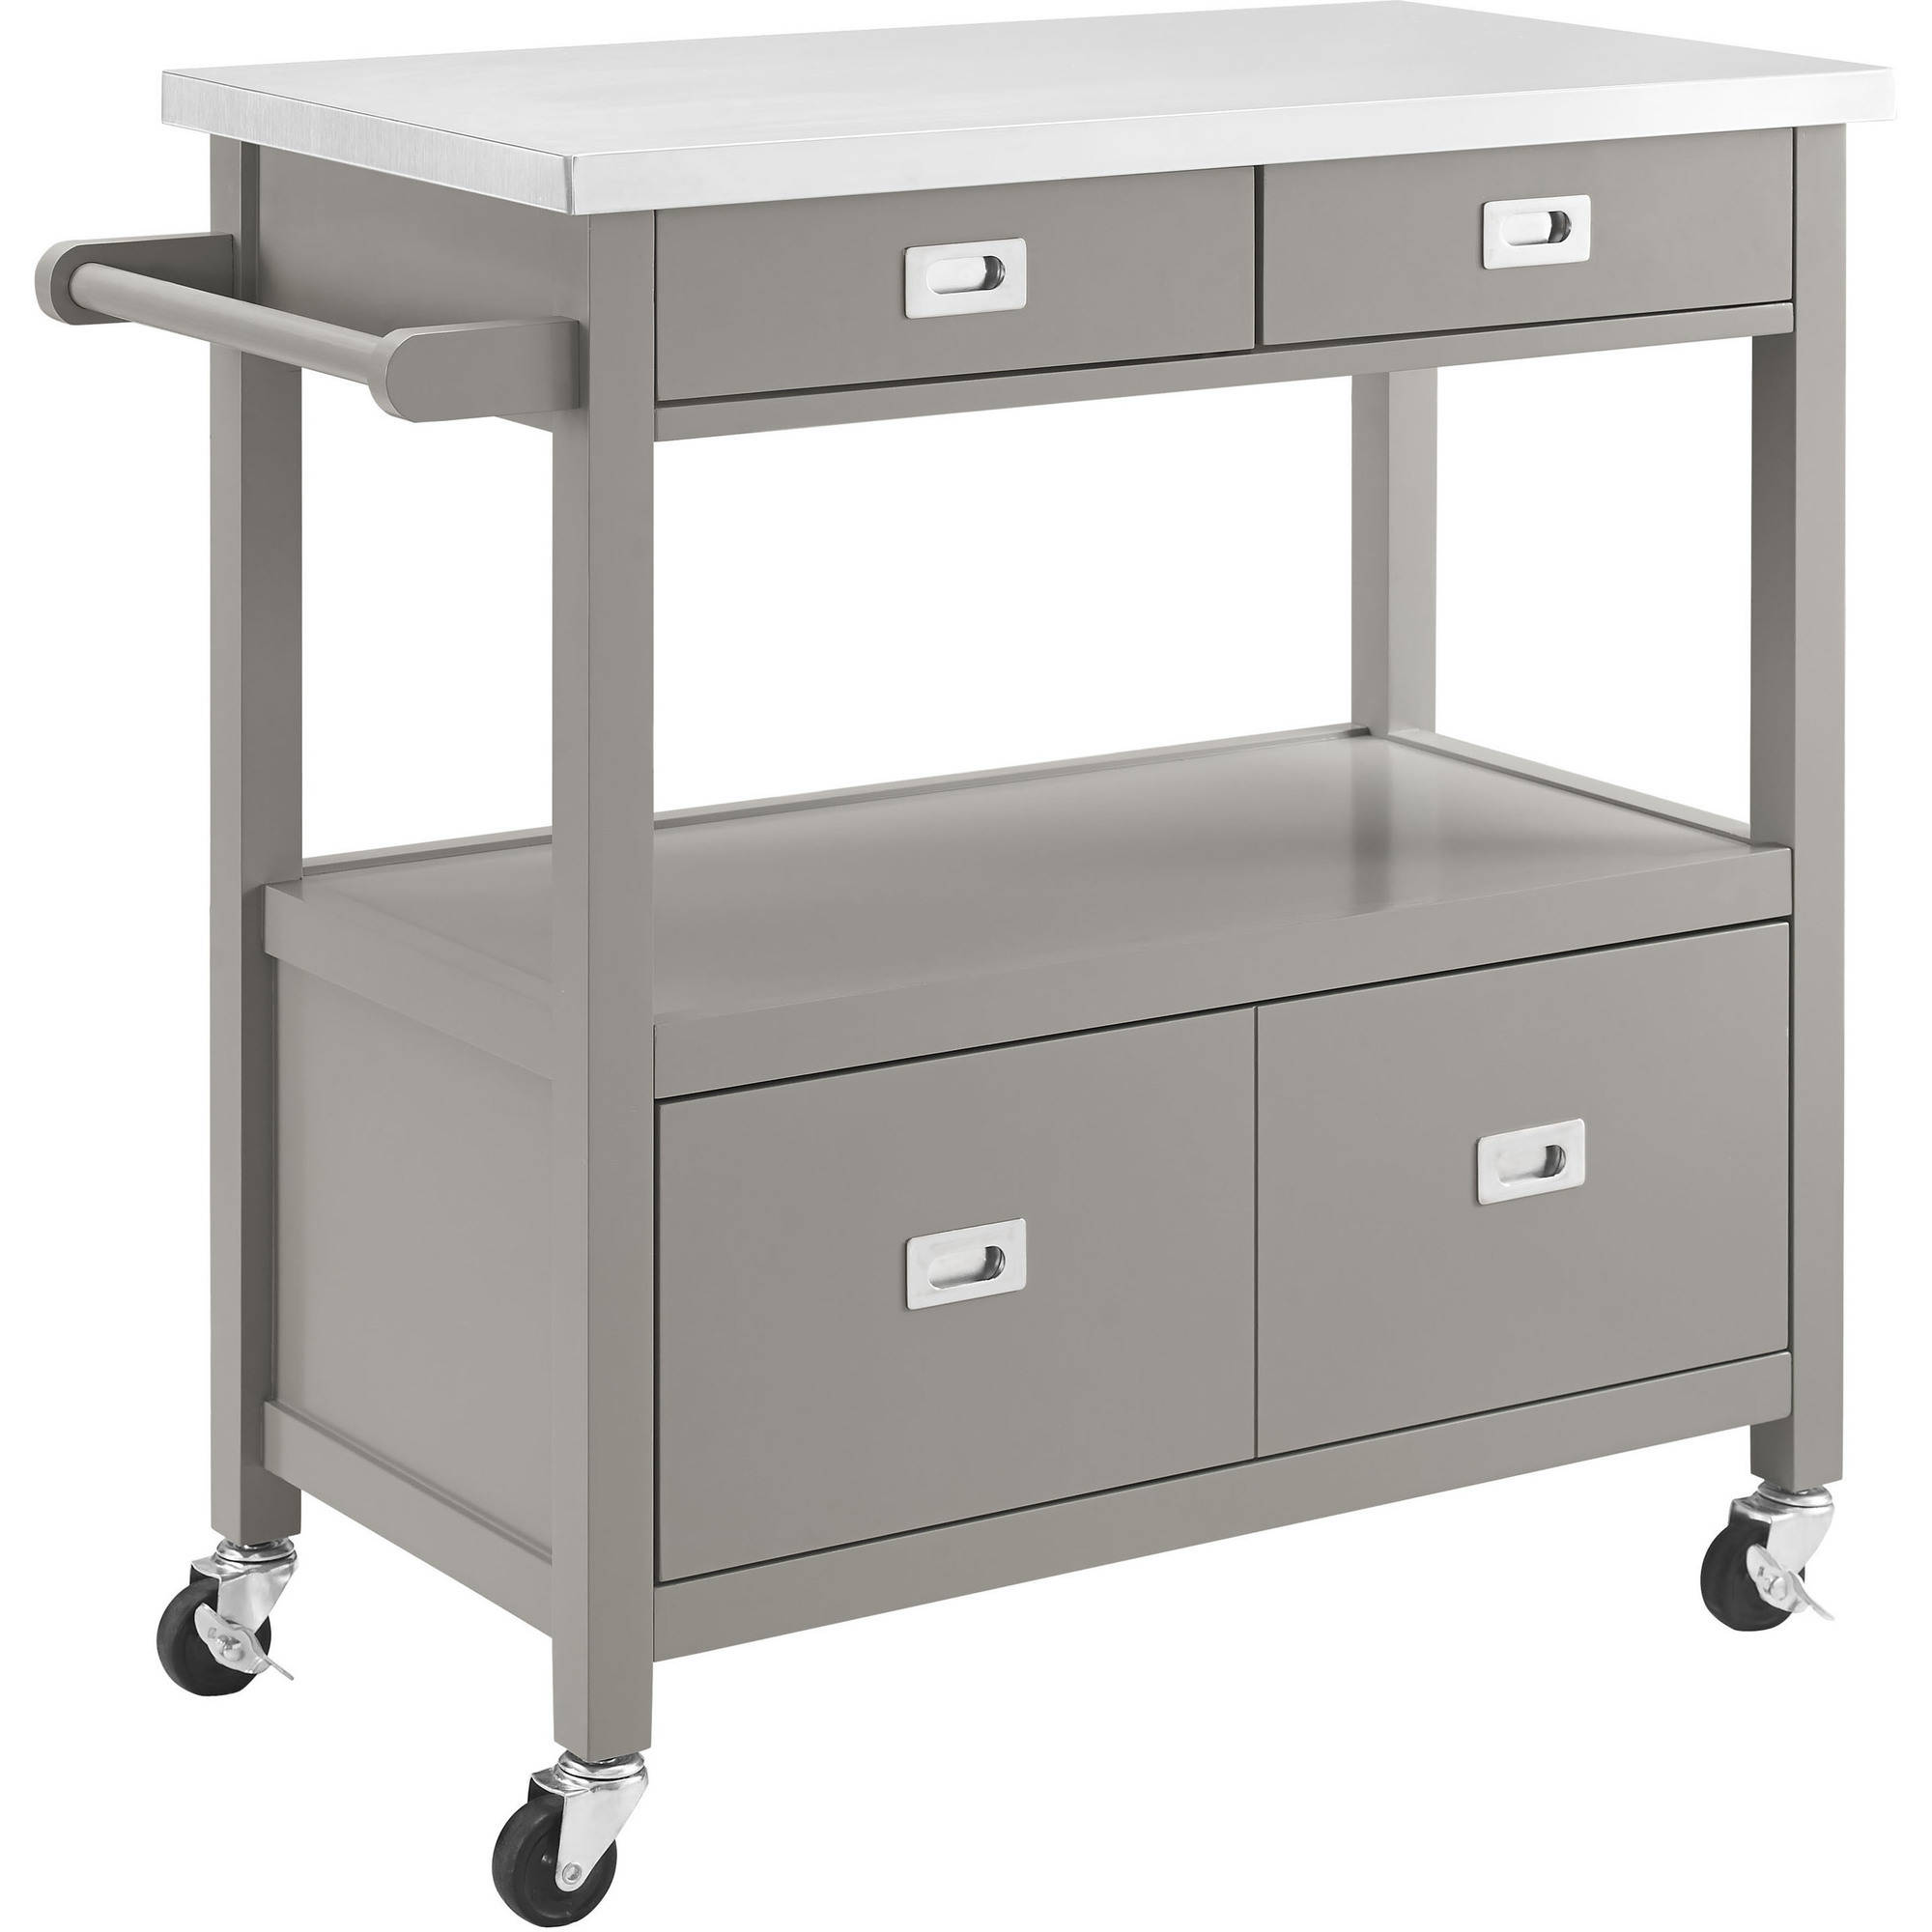 kitchen cart with drawers grill linon sydney gray stainless steel top 4